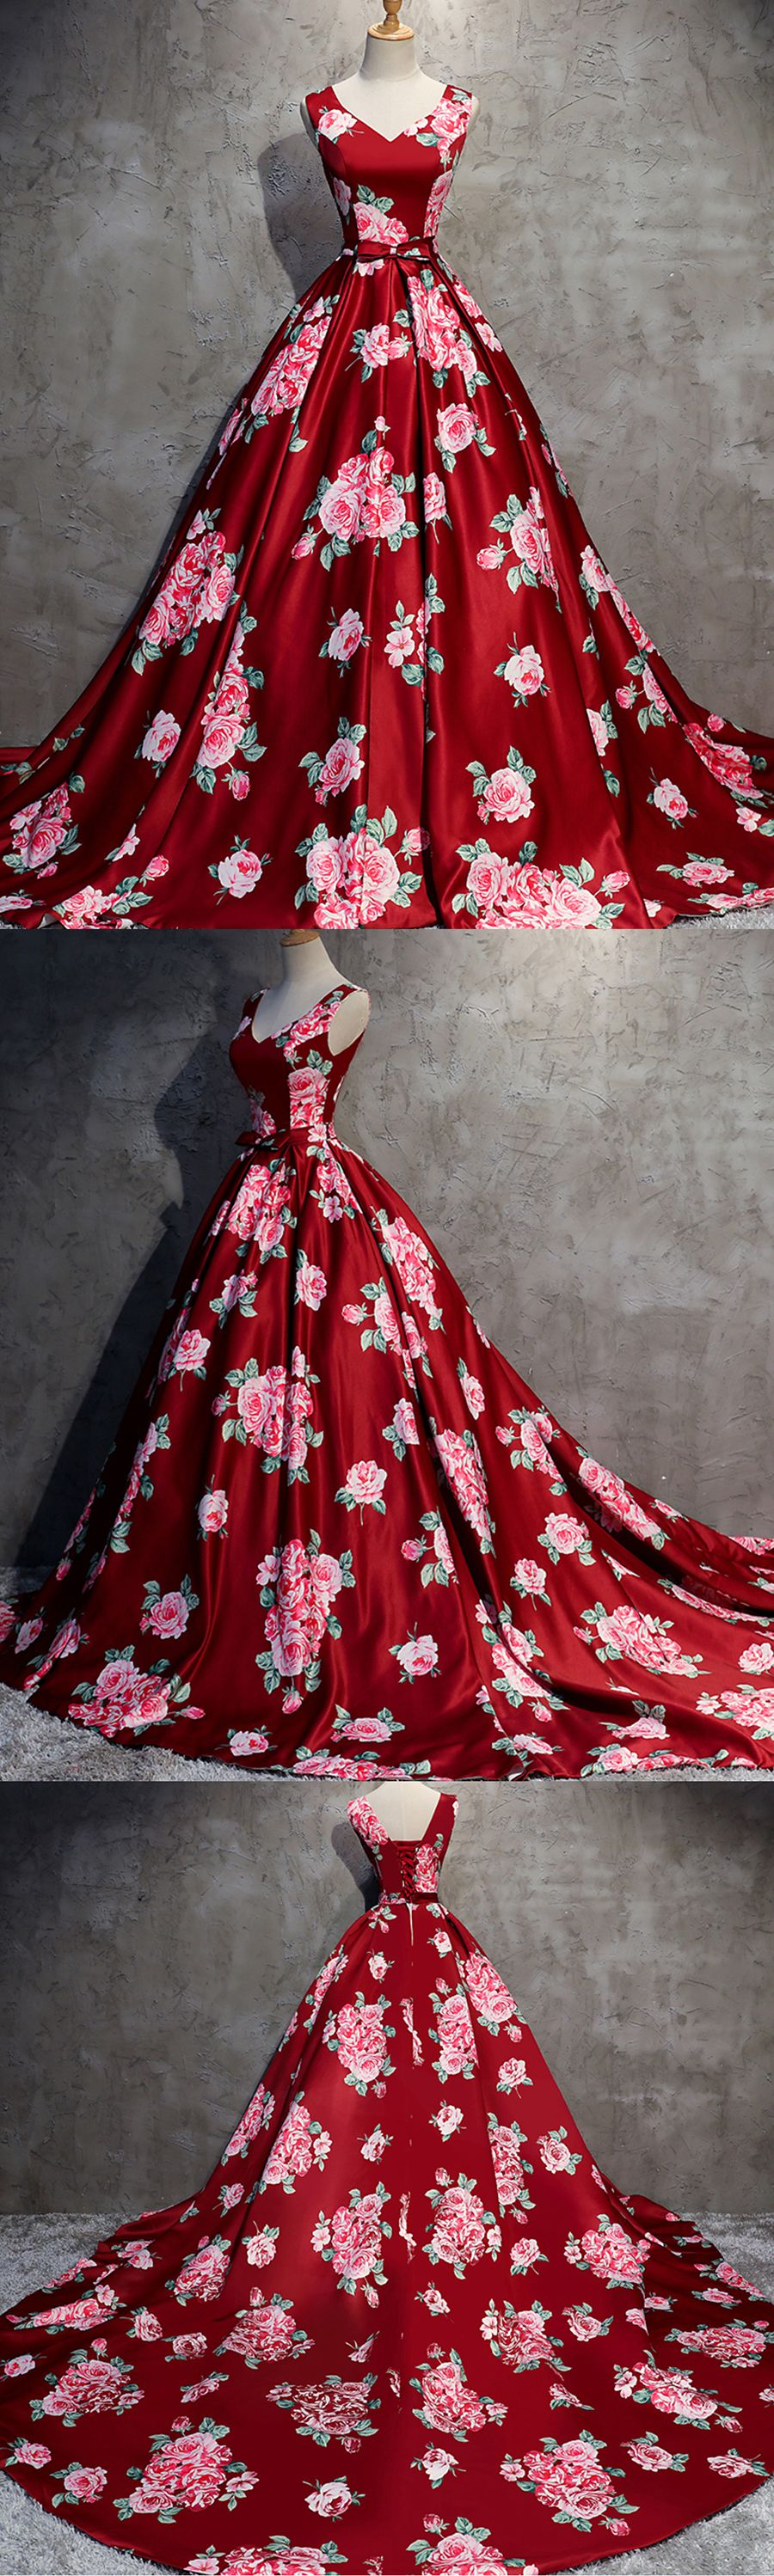 Cheap prom dresses by sweetheartdress red floral print satin v